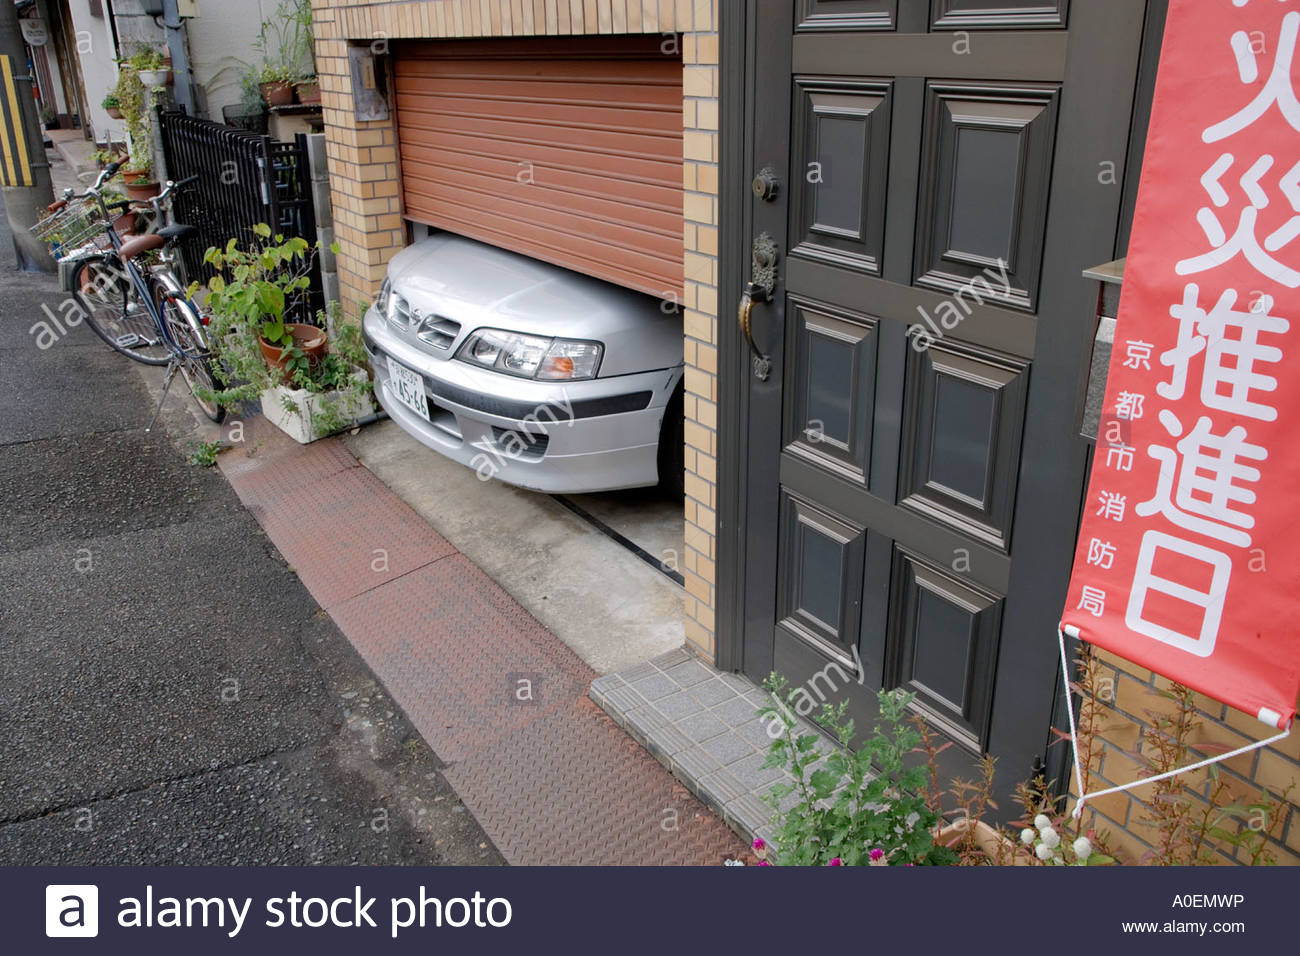 Indoor Parked Car With The Nose Sticking Out As The Garage Is To